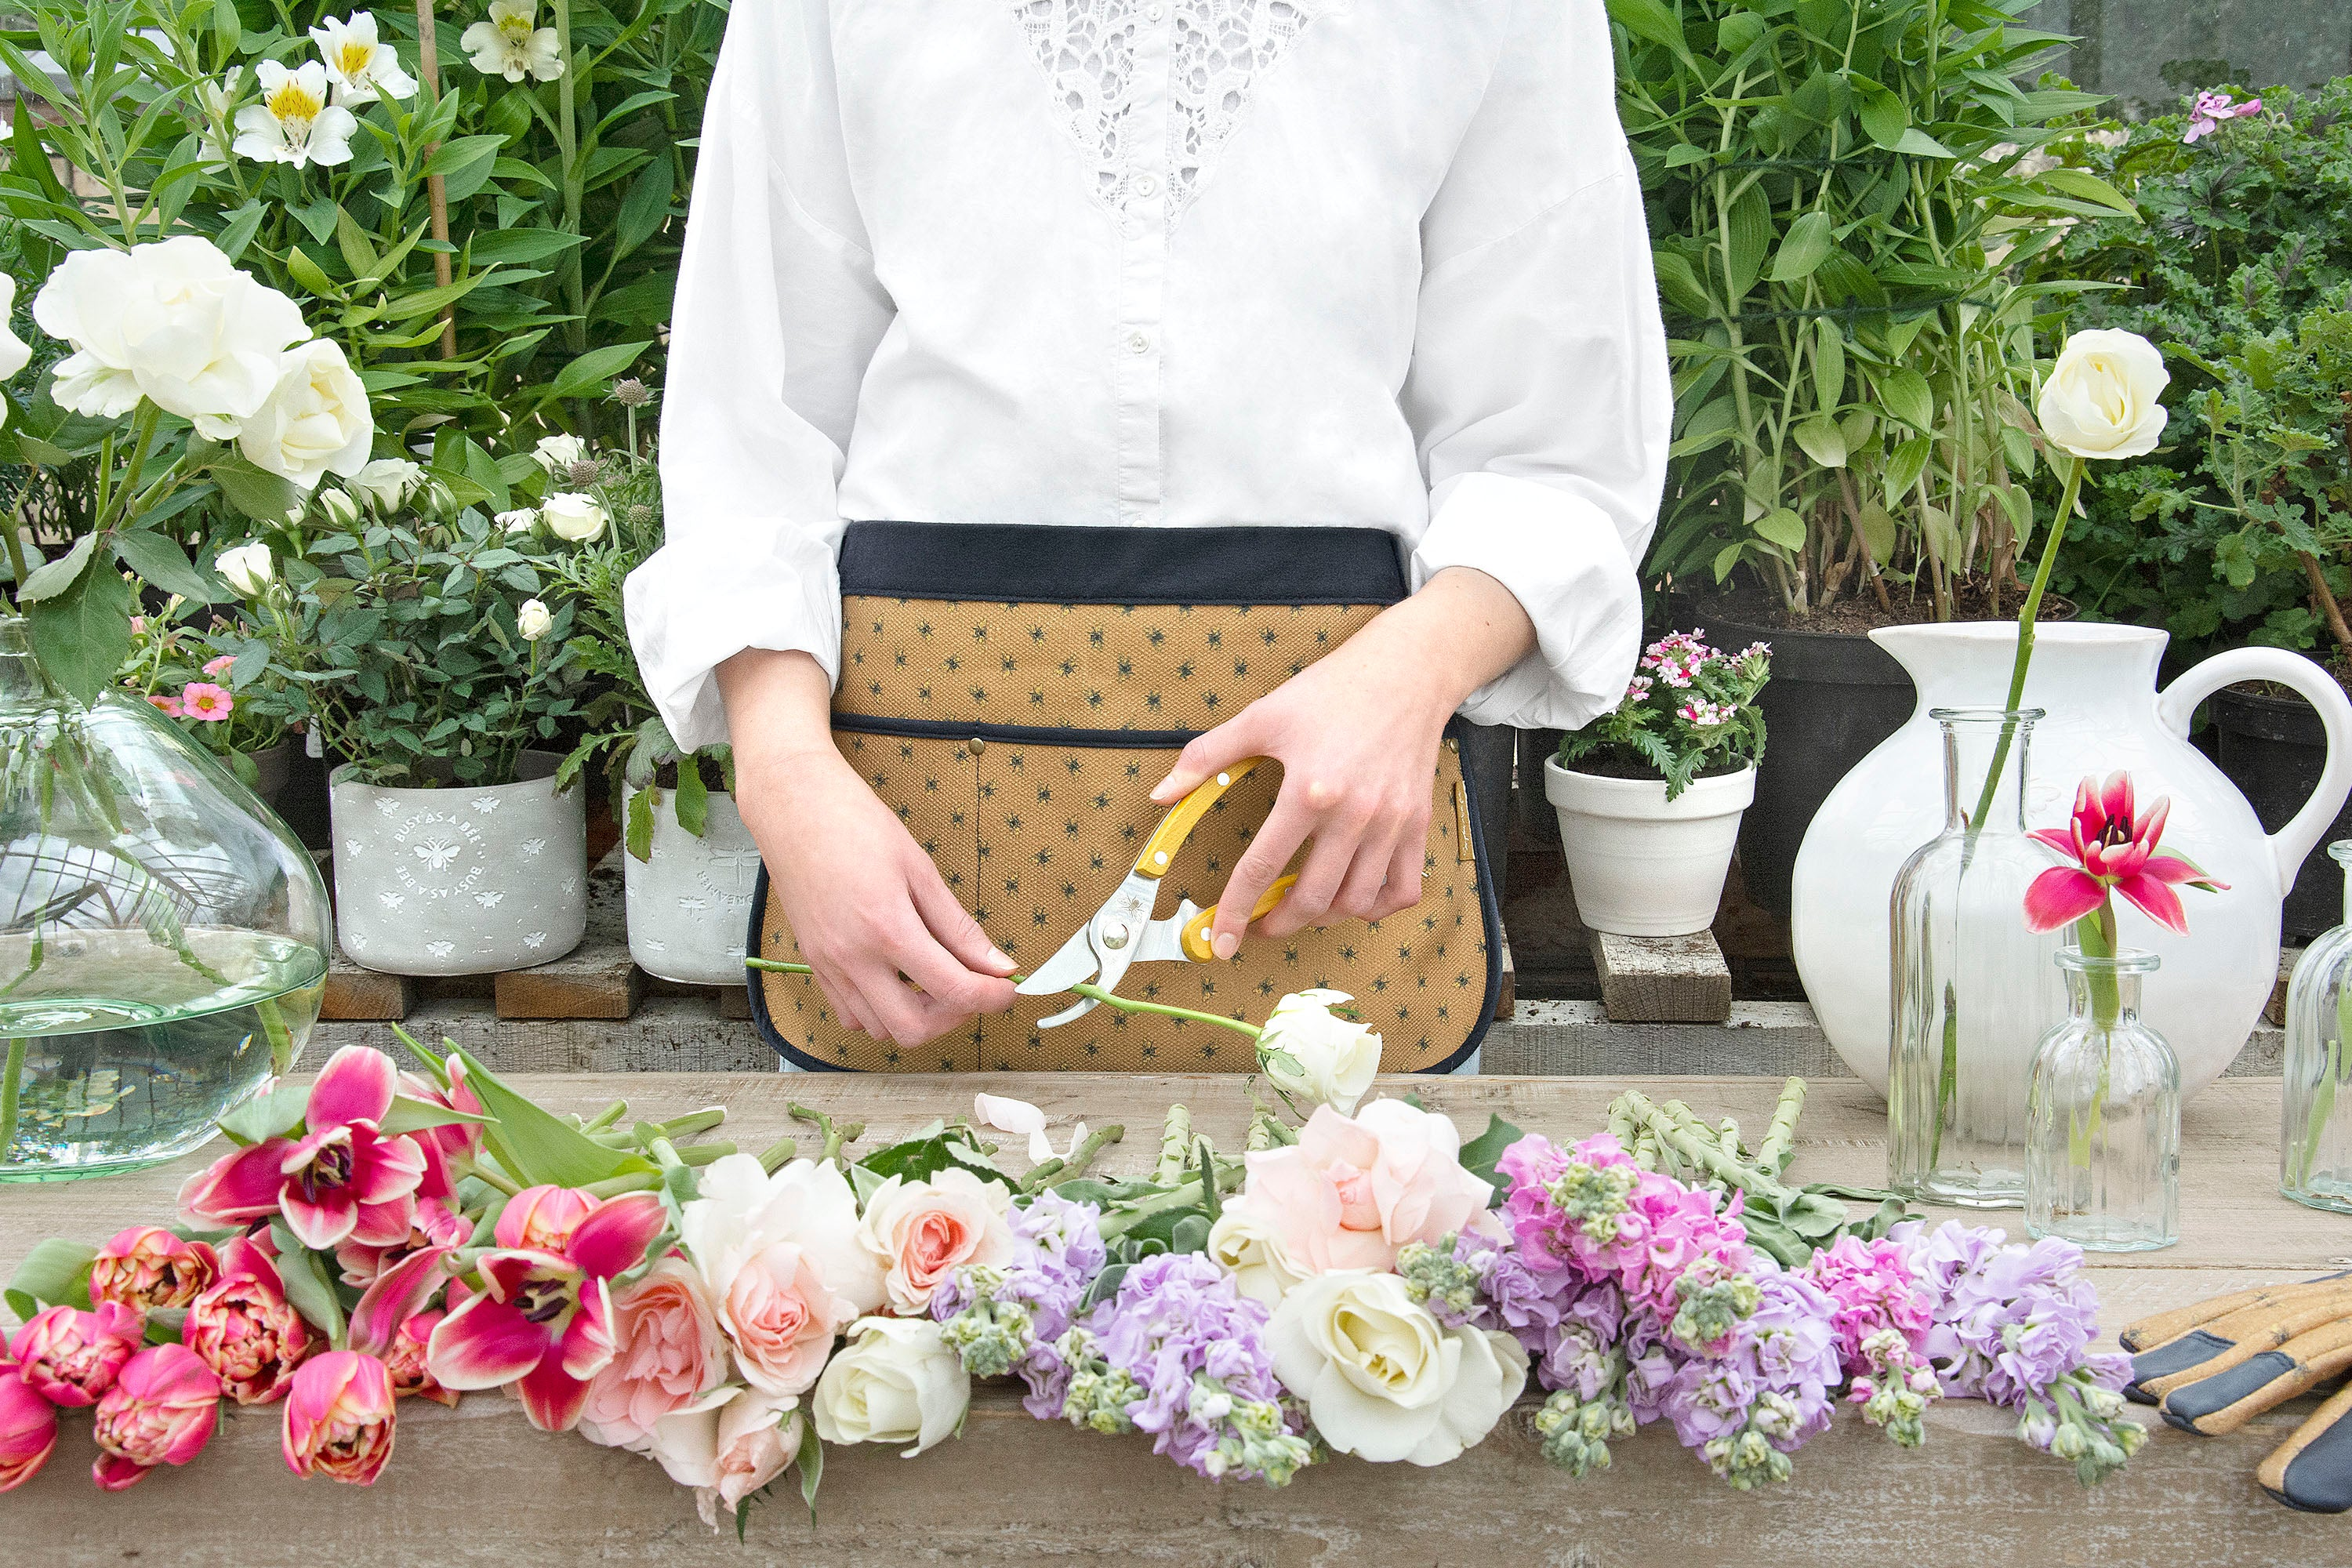 Top Tips for Growing Summer Flowers